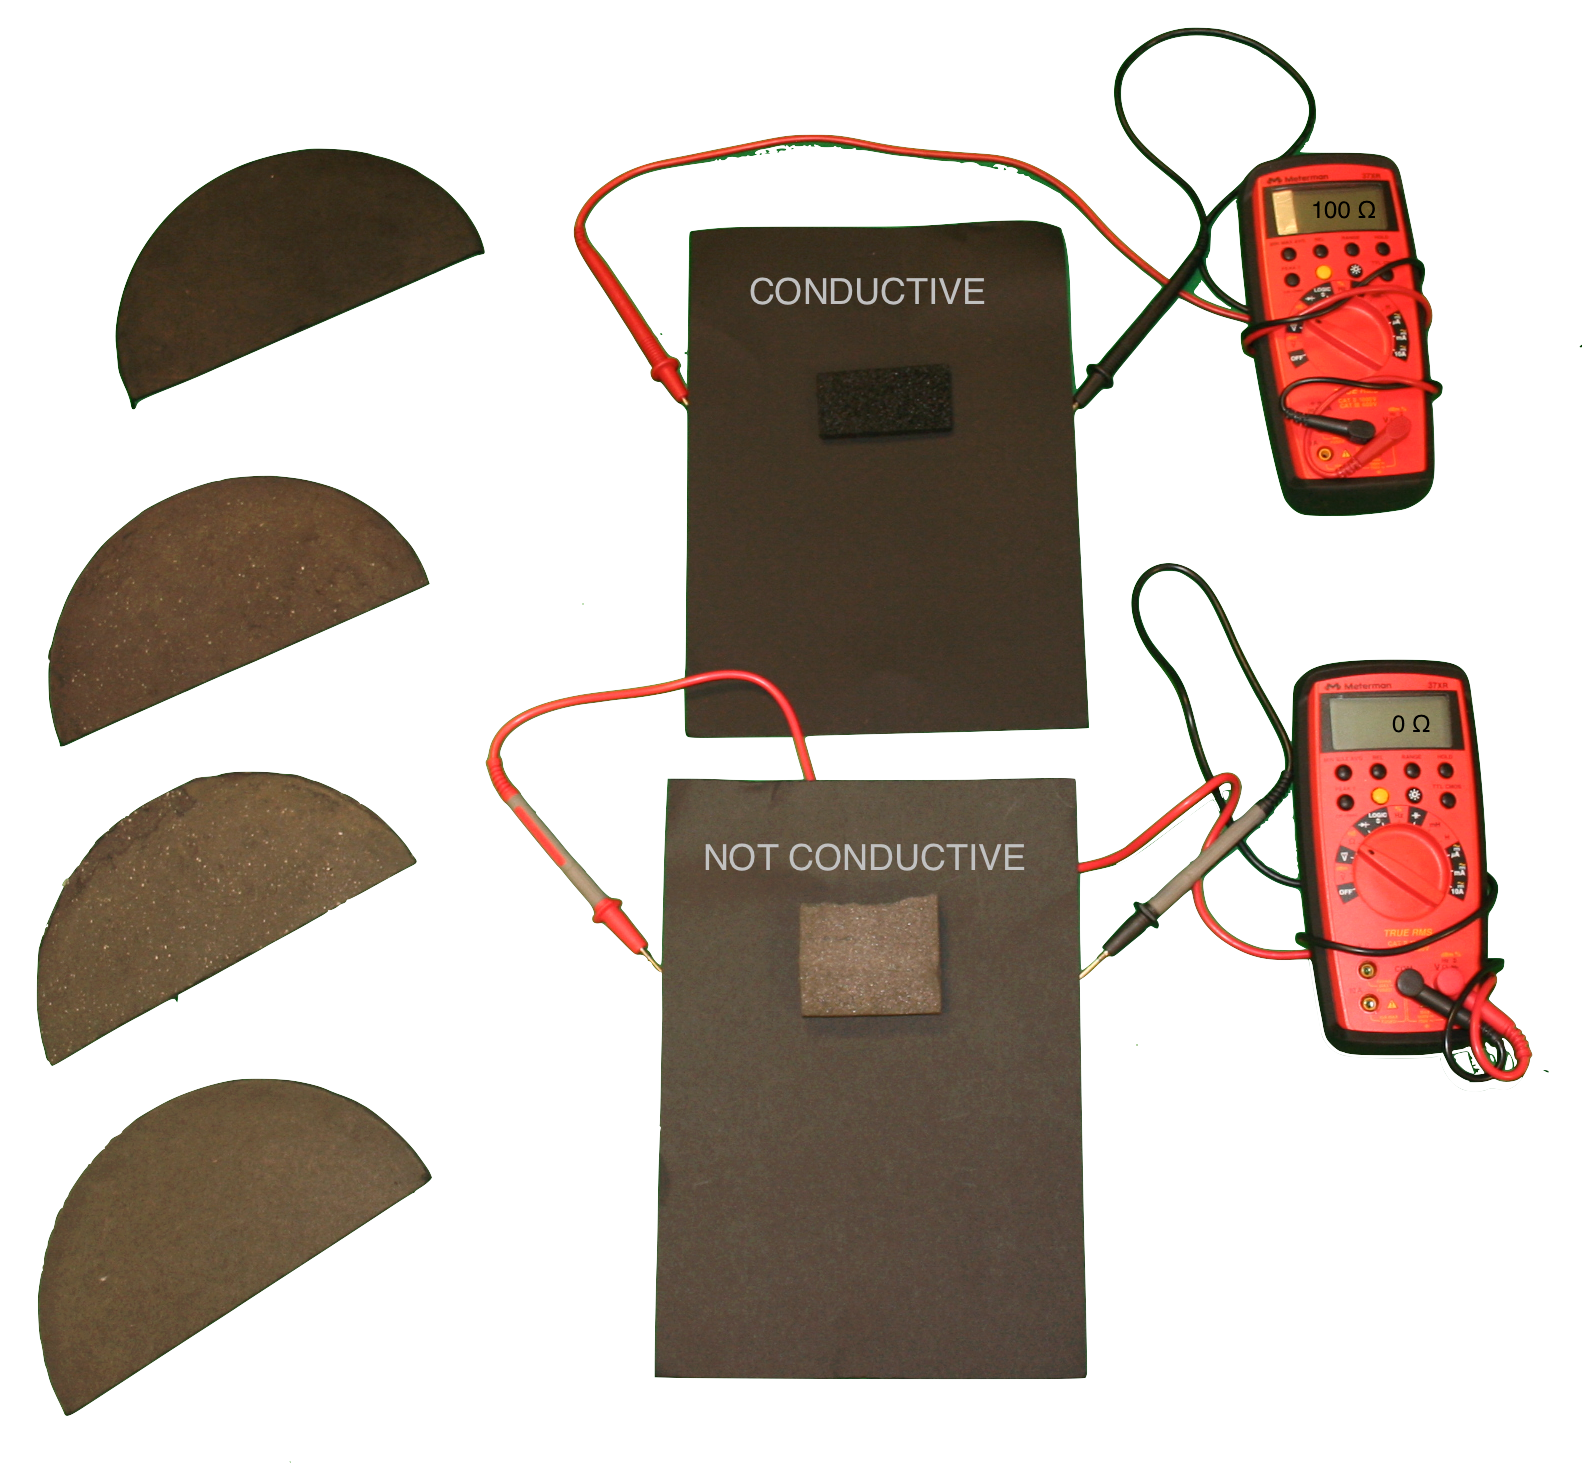 Conductive papers